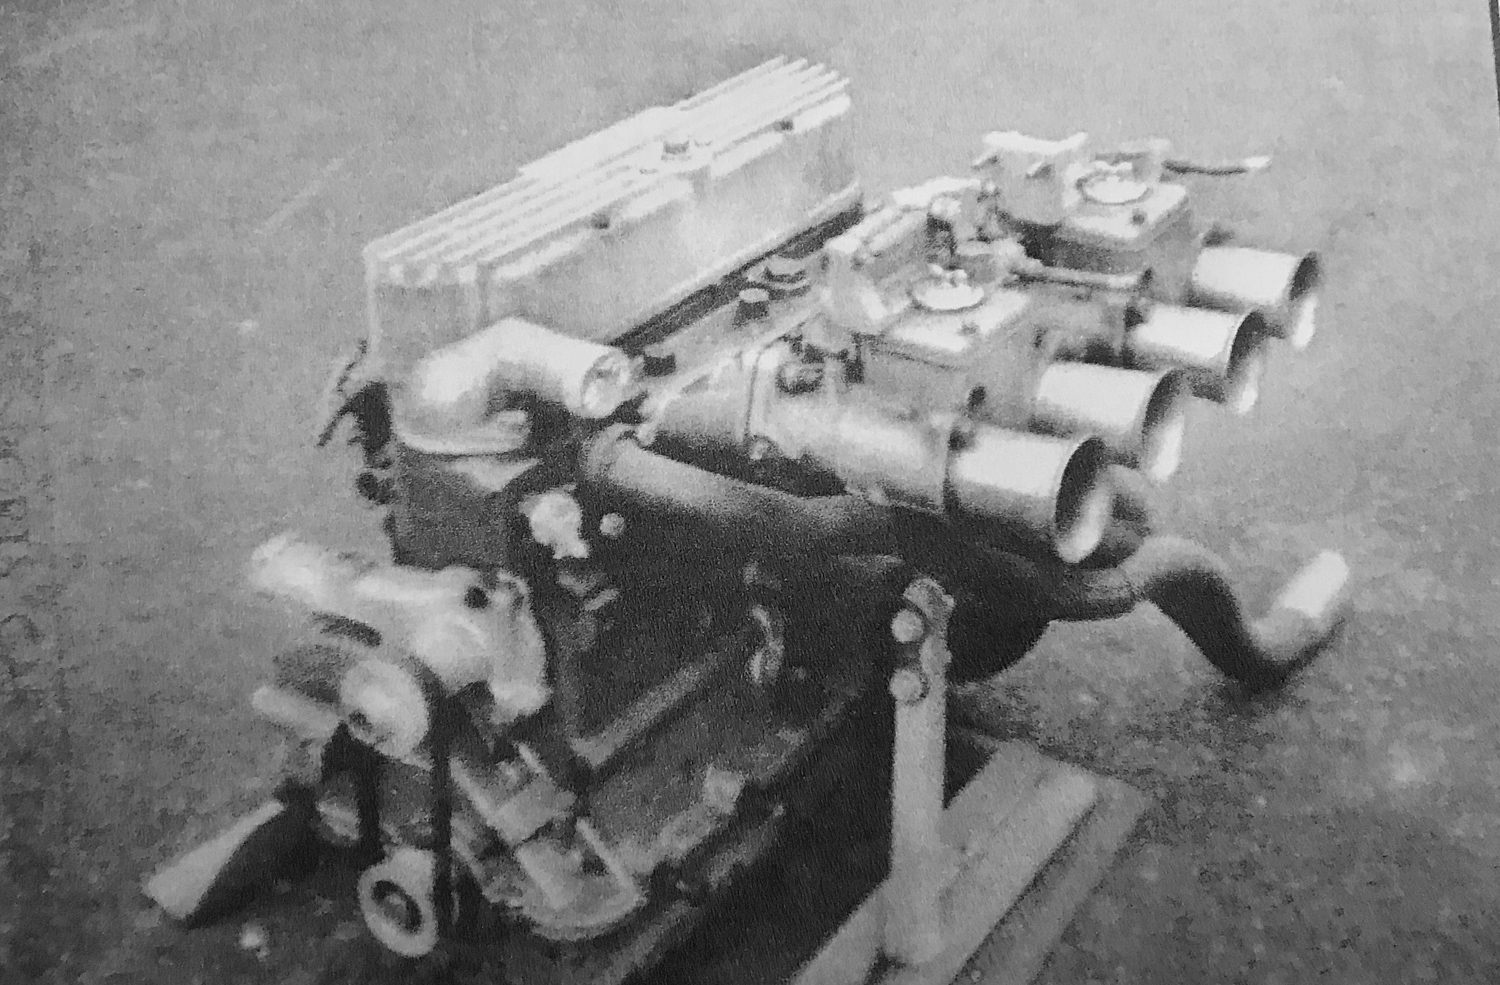 The Cosworth-modified Ford engine of Ruth's Turner in race trim, early 1970s.